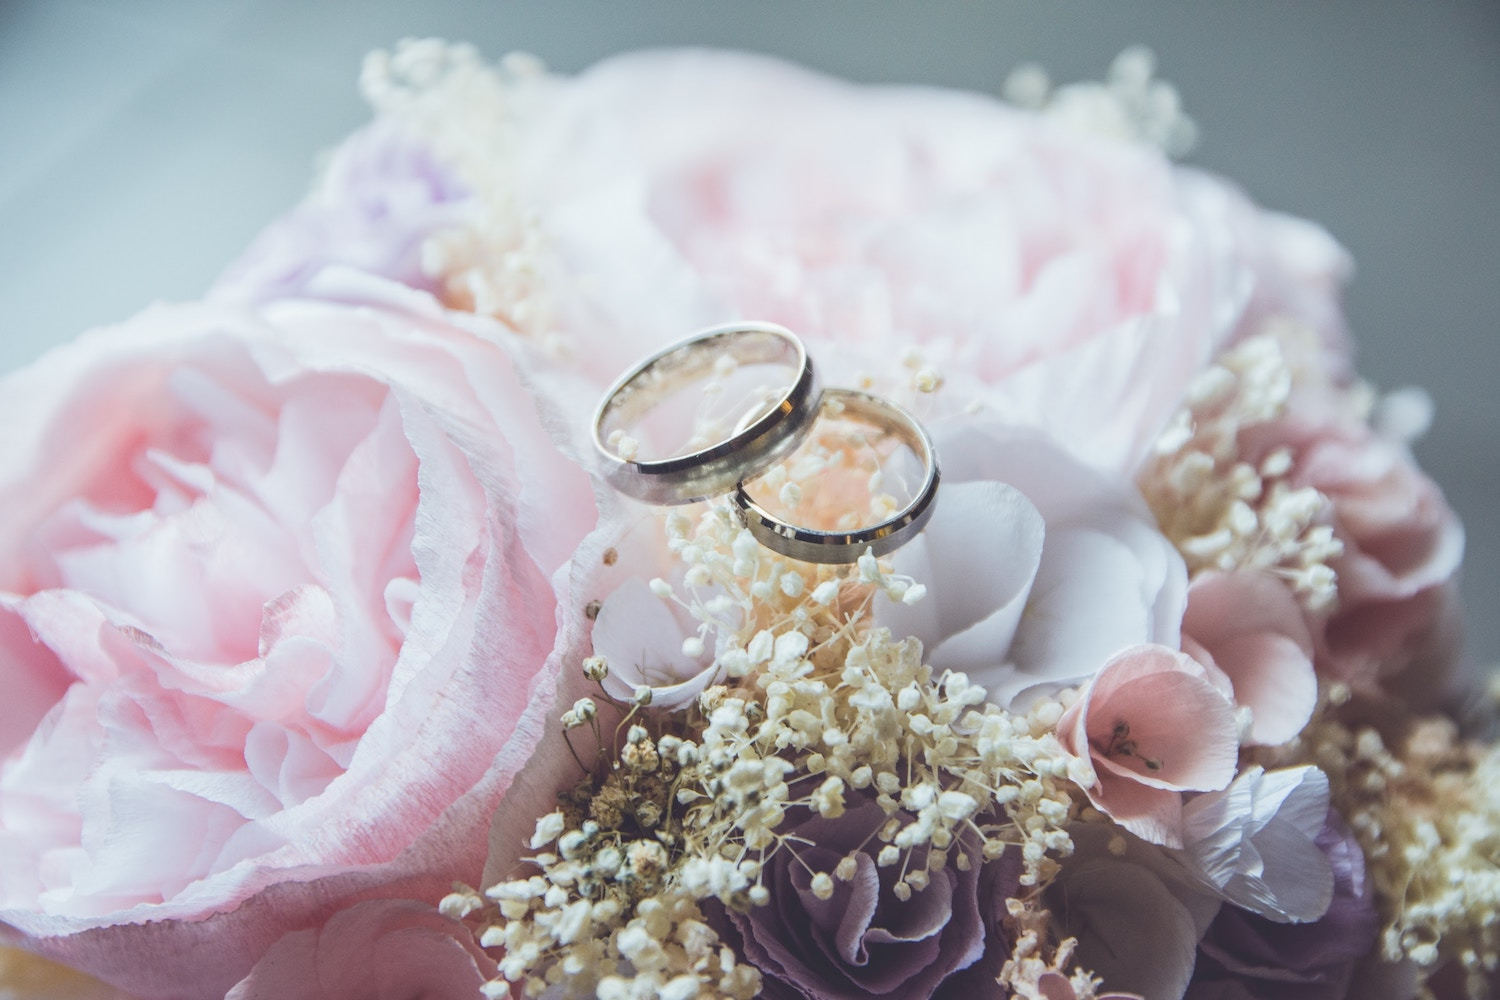 Wedding bouquet with wedding bands on top - wedding planning Absolutely Chic Events